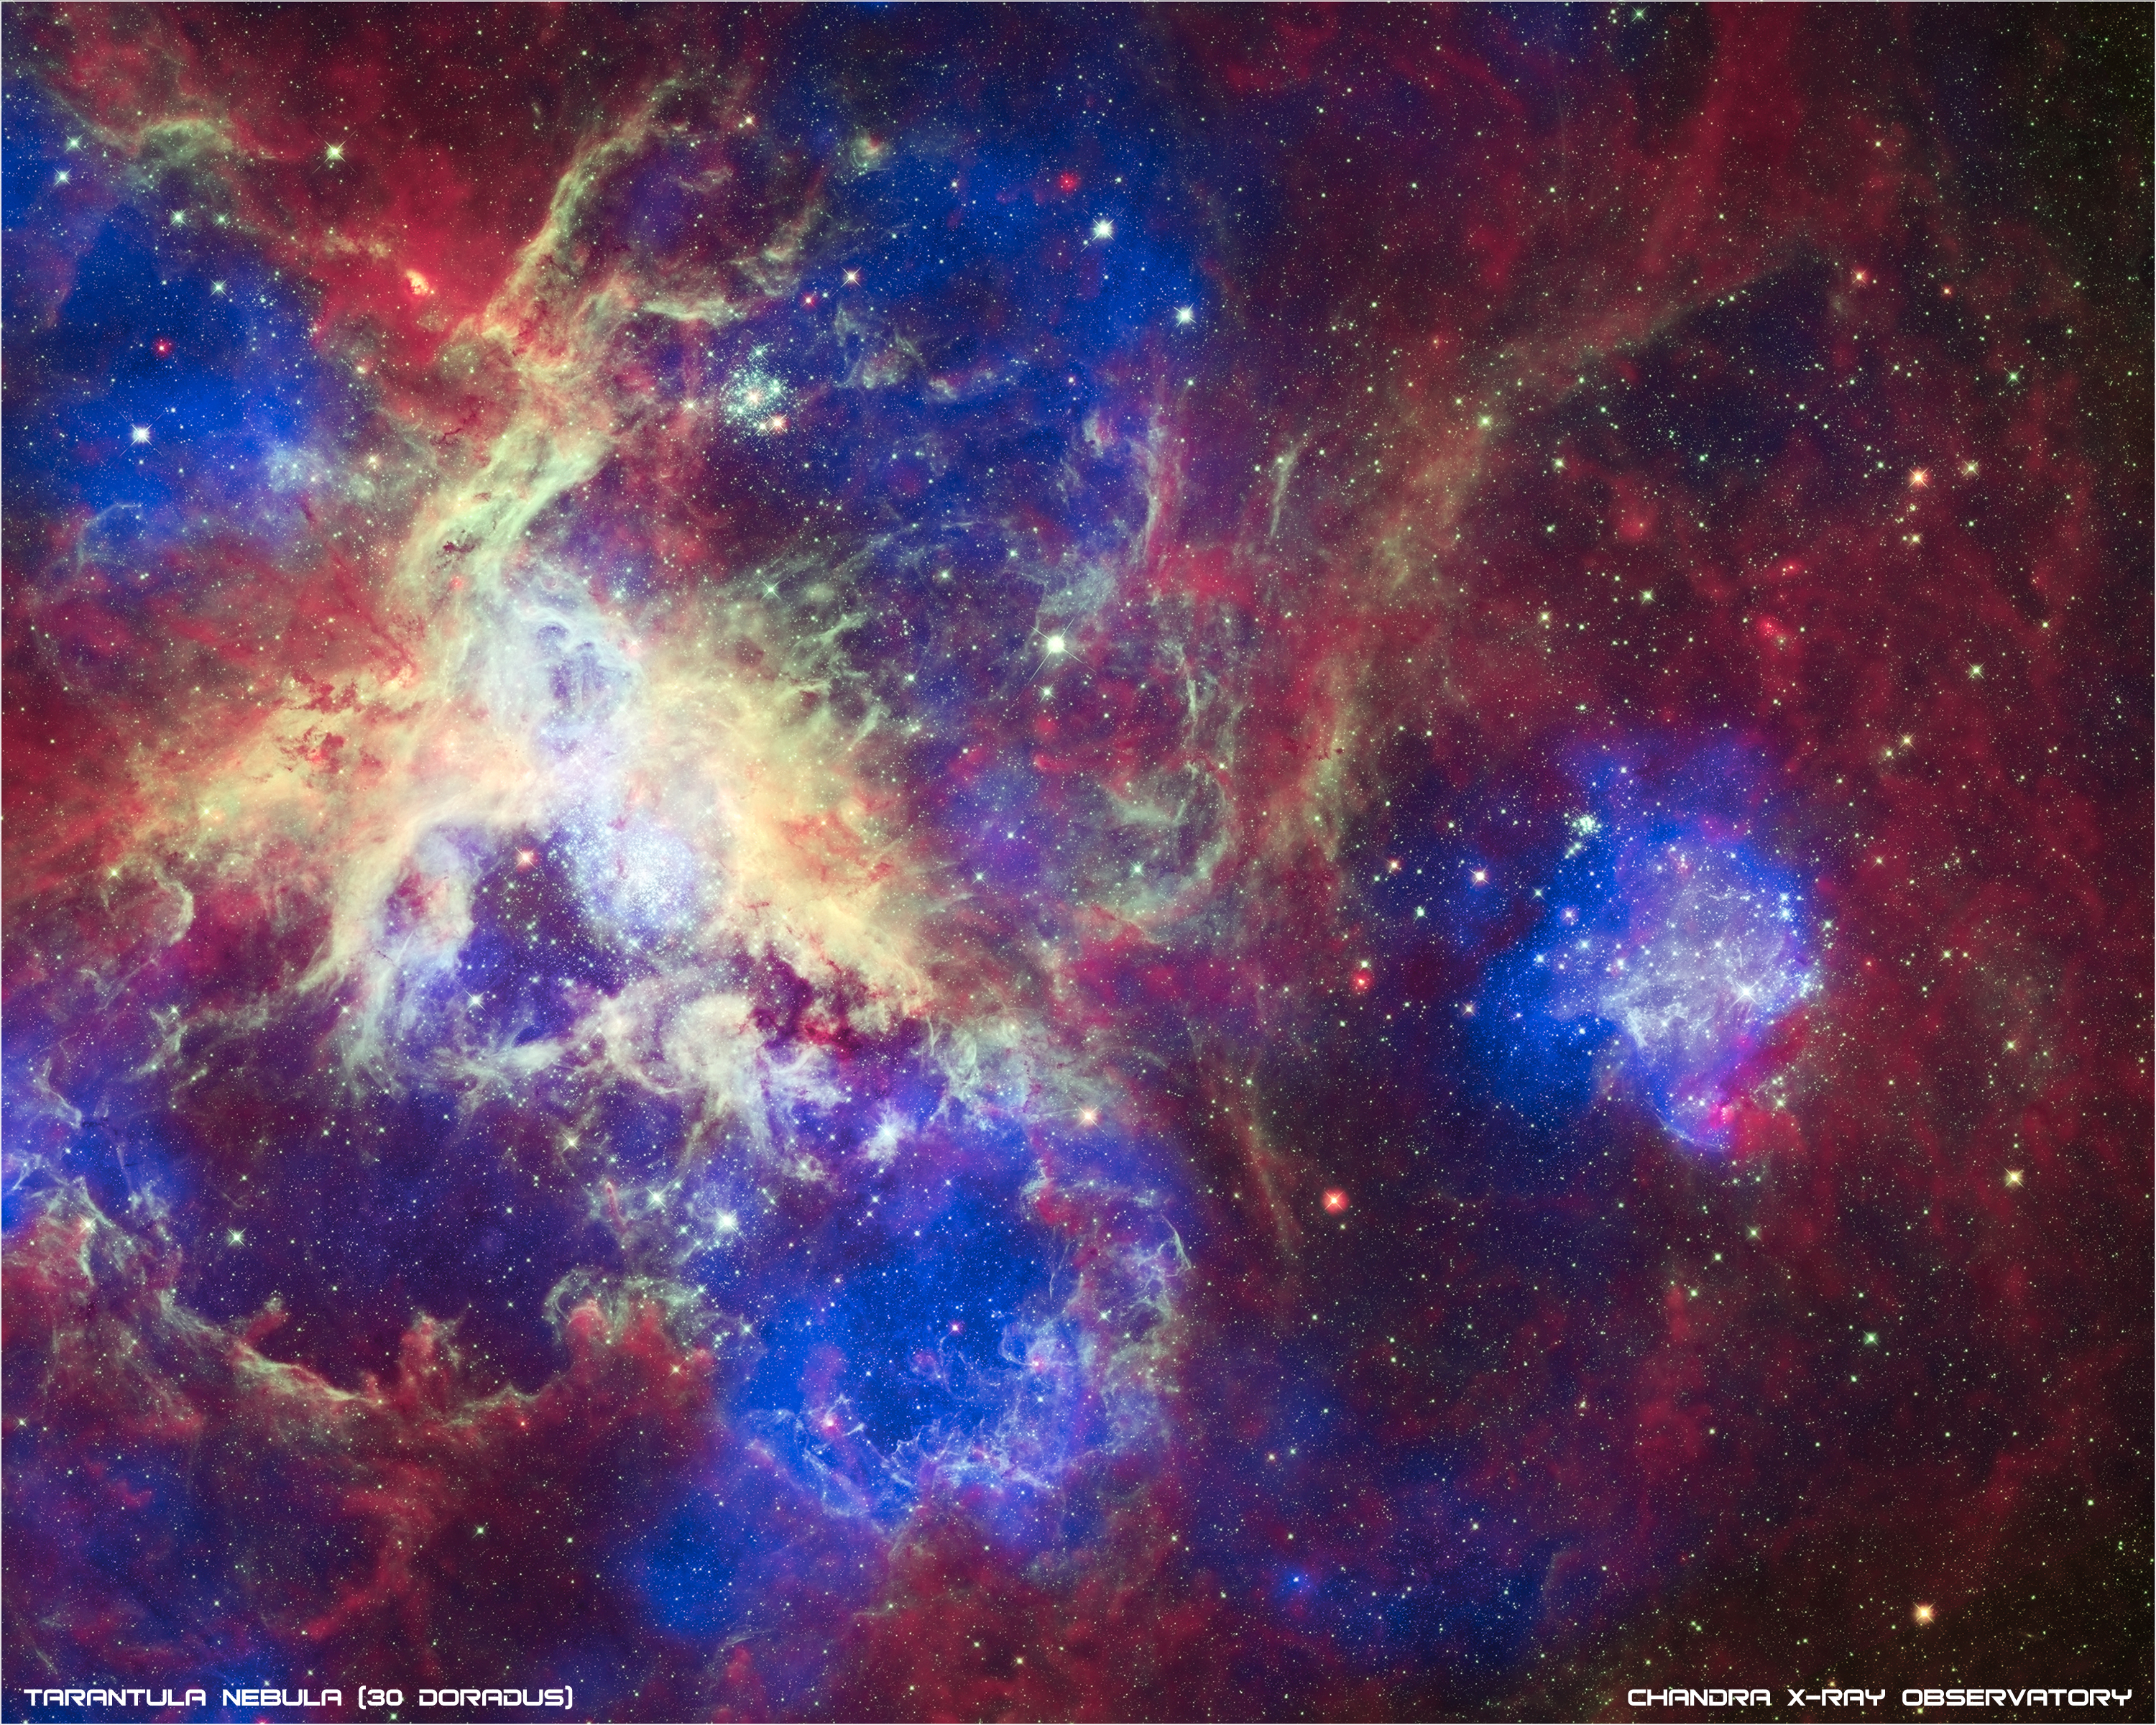 A New View of the Tarantula Nebula.